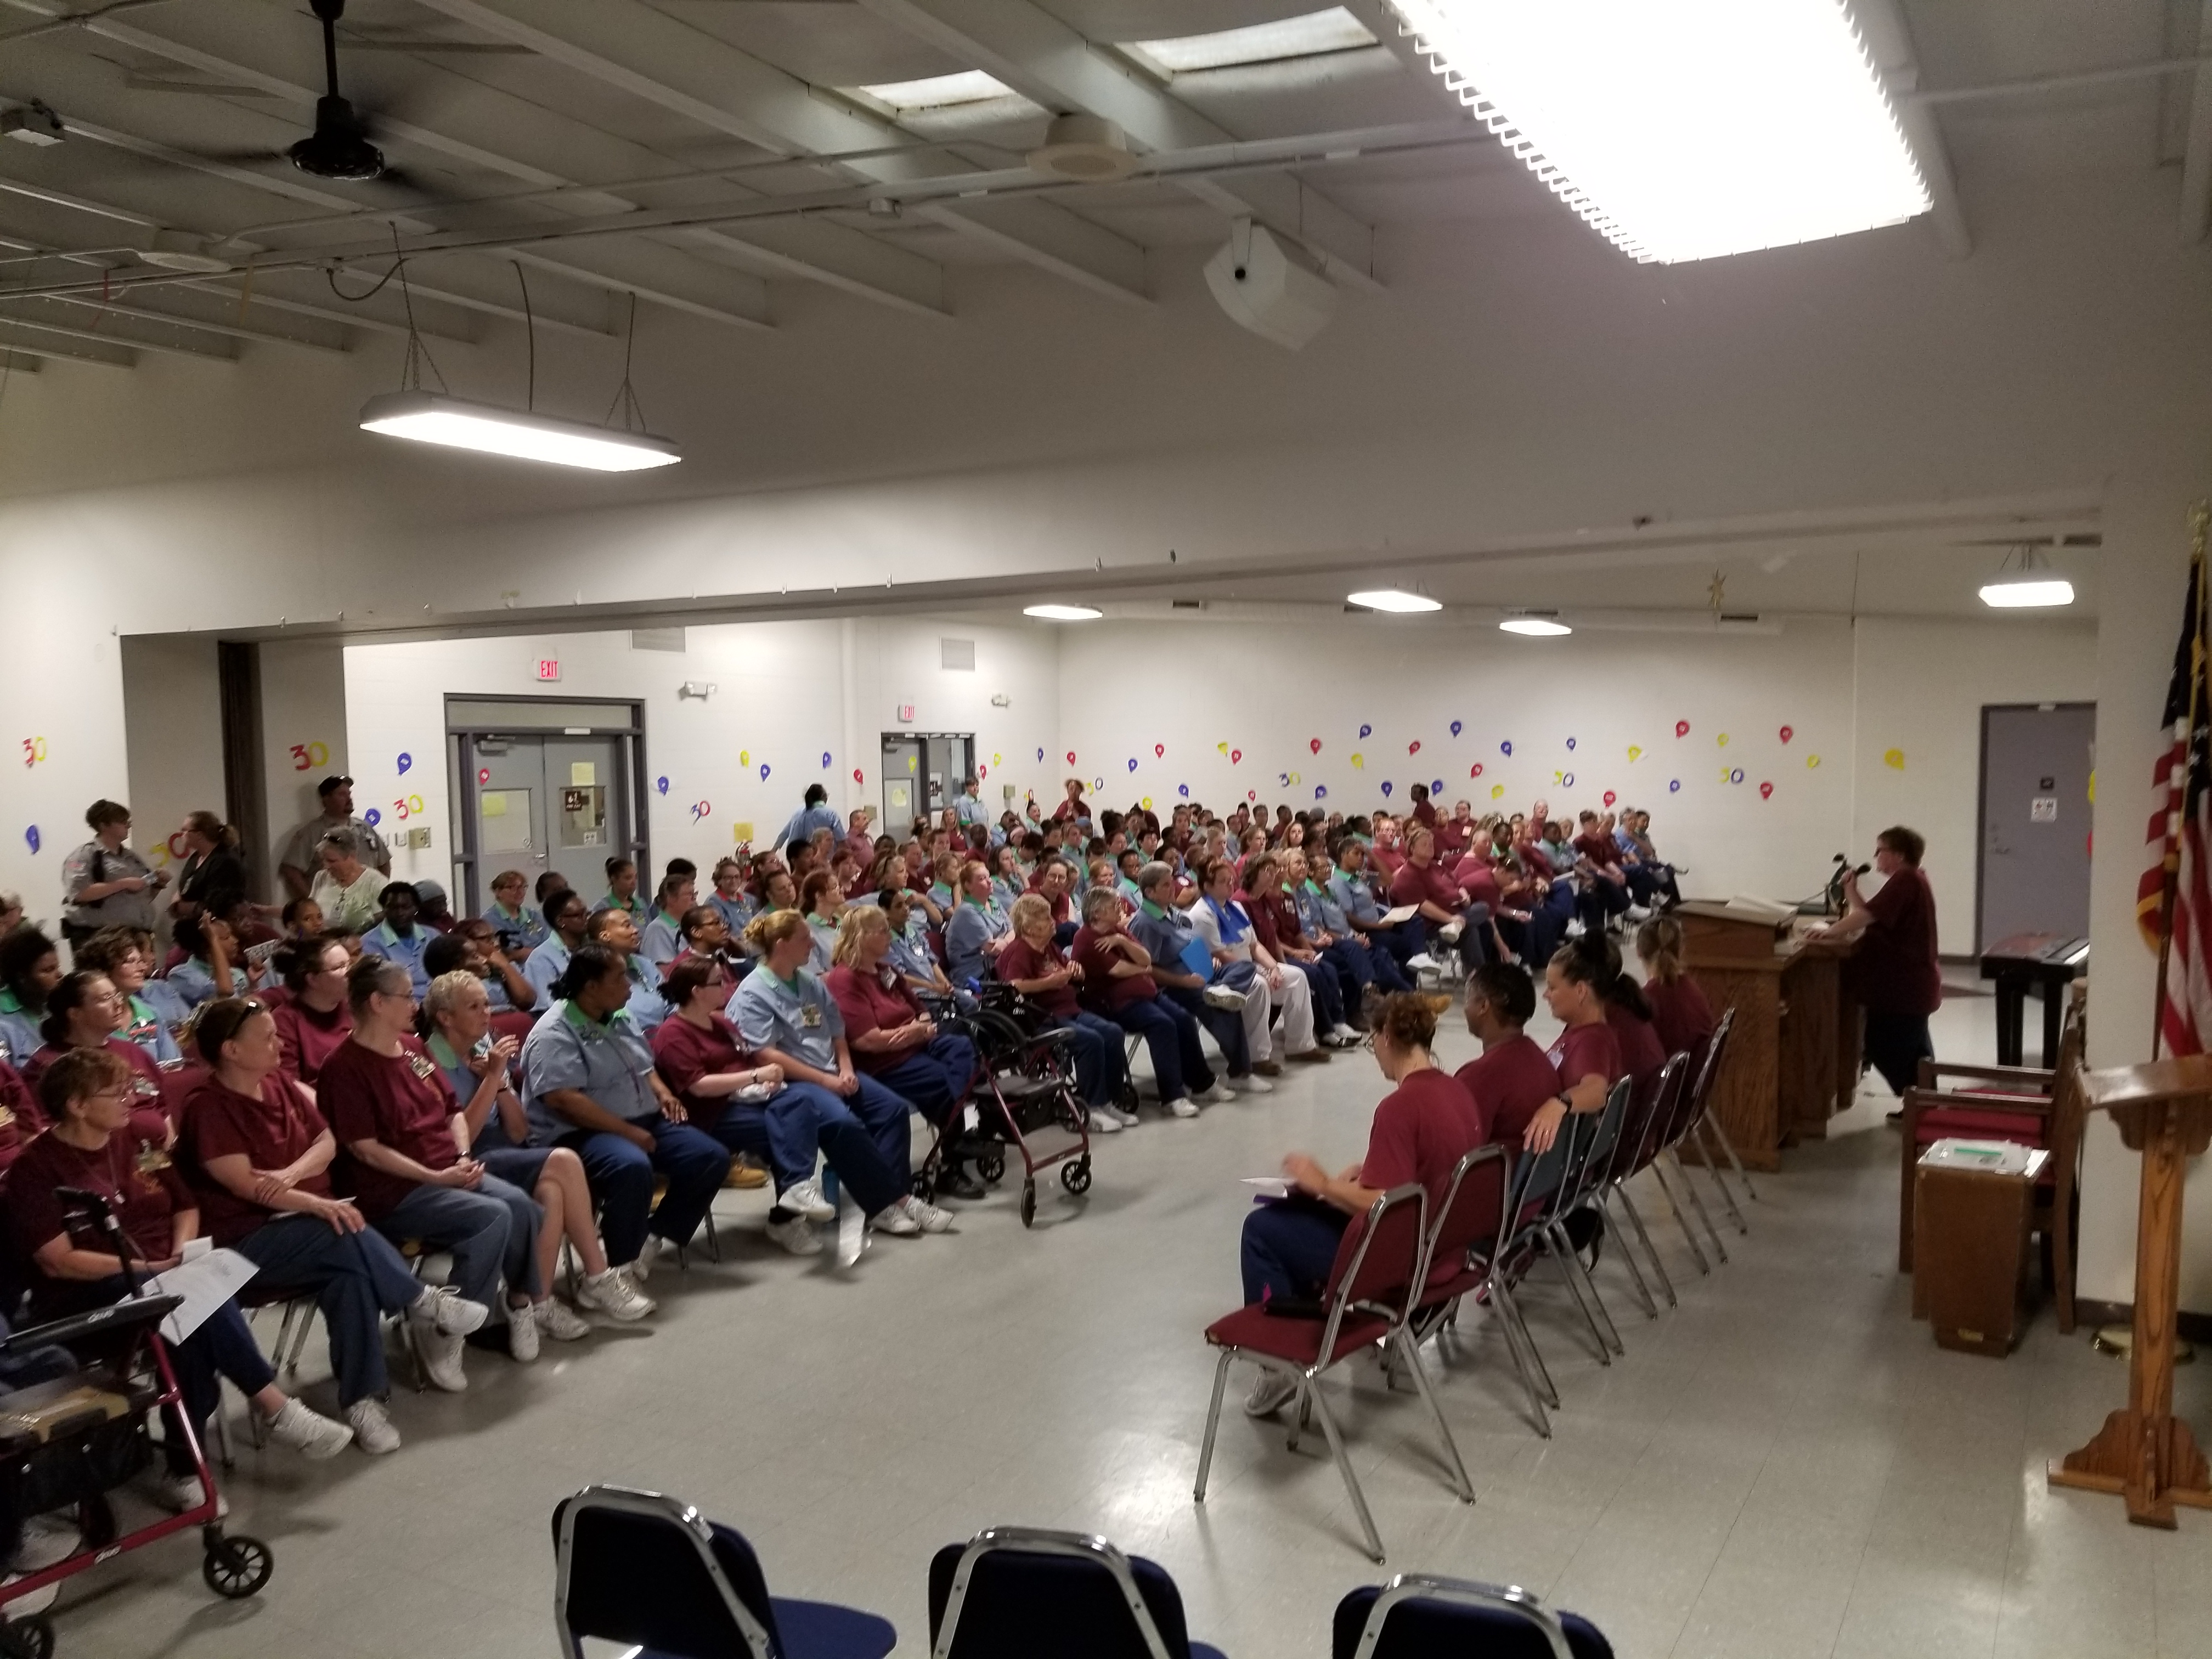 Inmate LIFE Group celebrates 30yrs at ORW